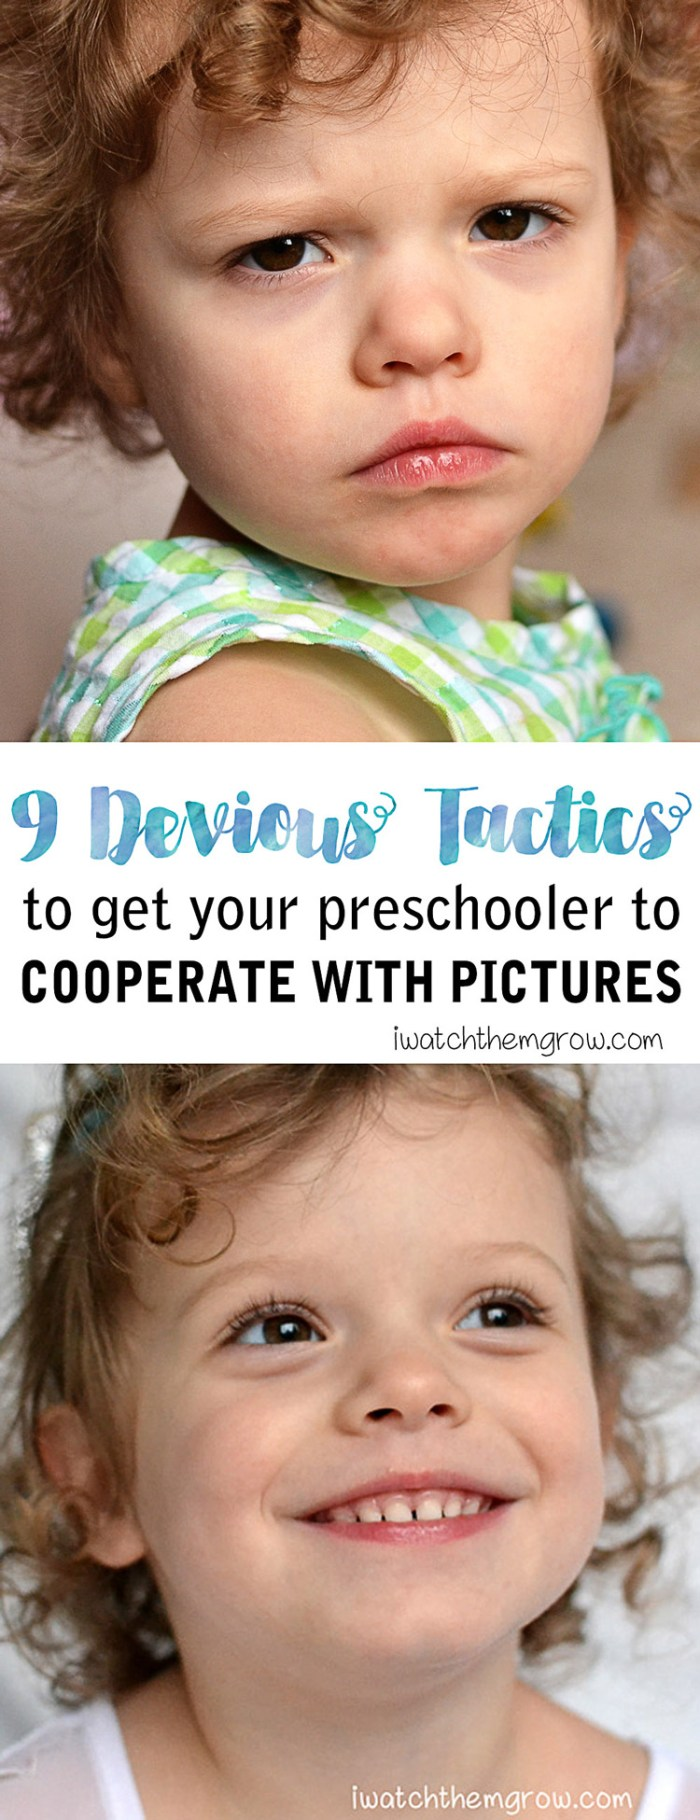 Want to know how to get your 3 year old to cooperate with pictures, and even like it? Try these devious tactics that work for me!